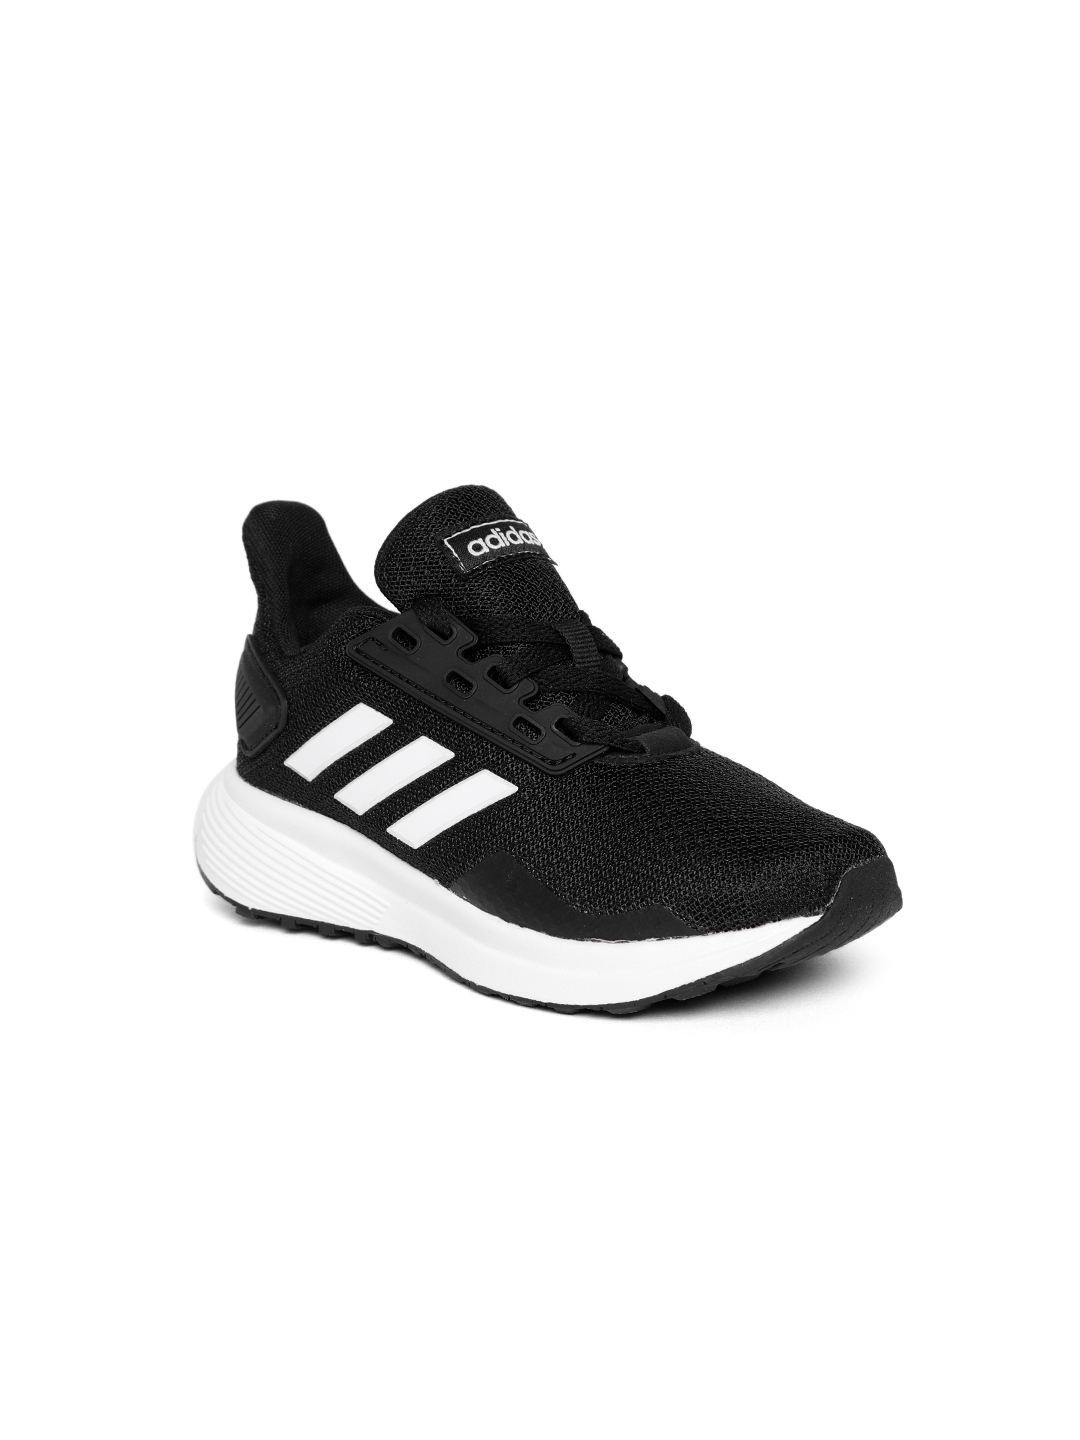 f8f921cdb Buy ADIDAS Kids Black Duramo 9 Running Shoes - Sports Shoes for ...